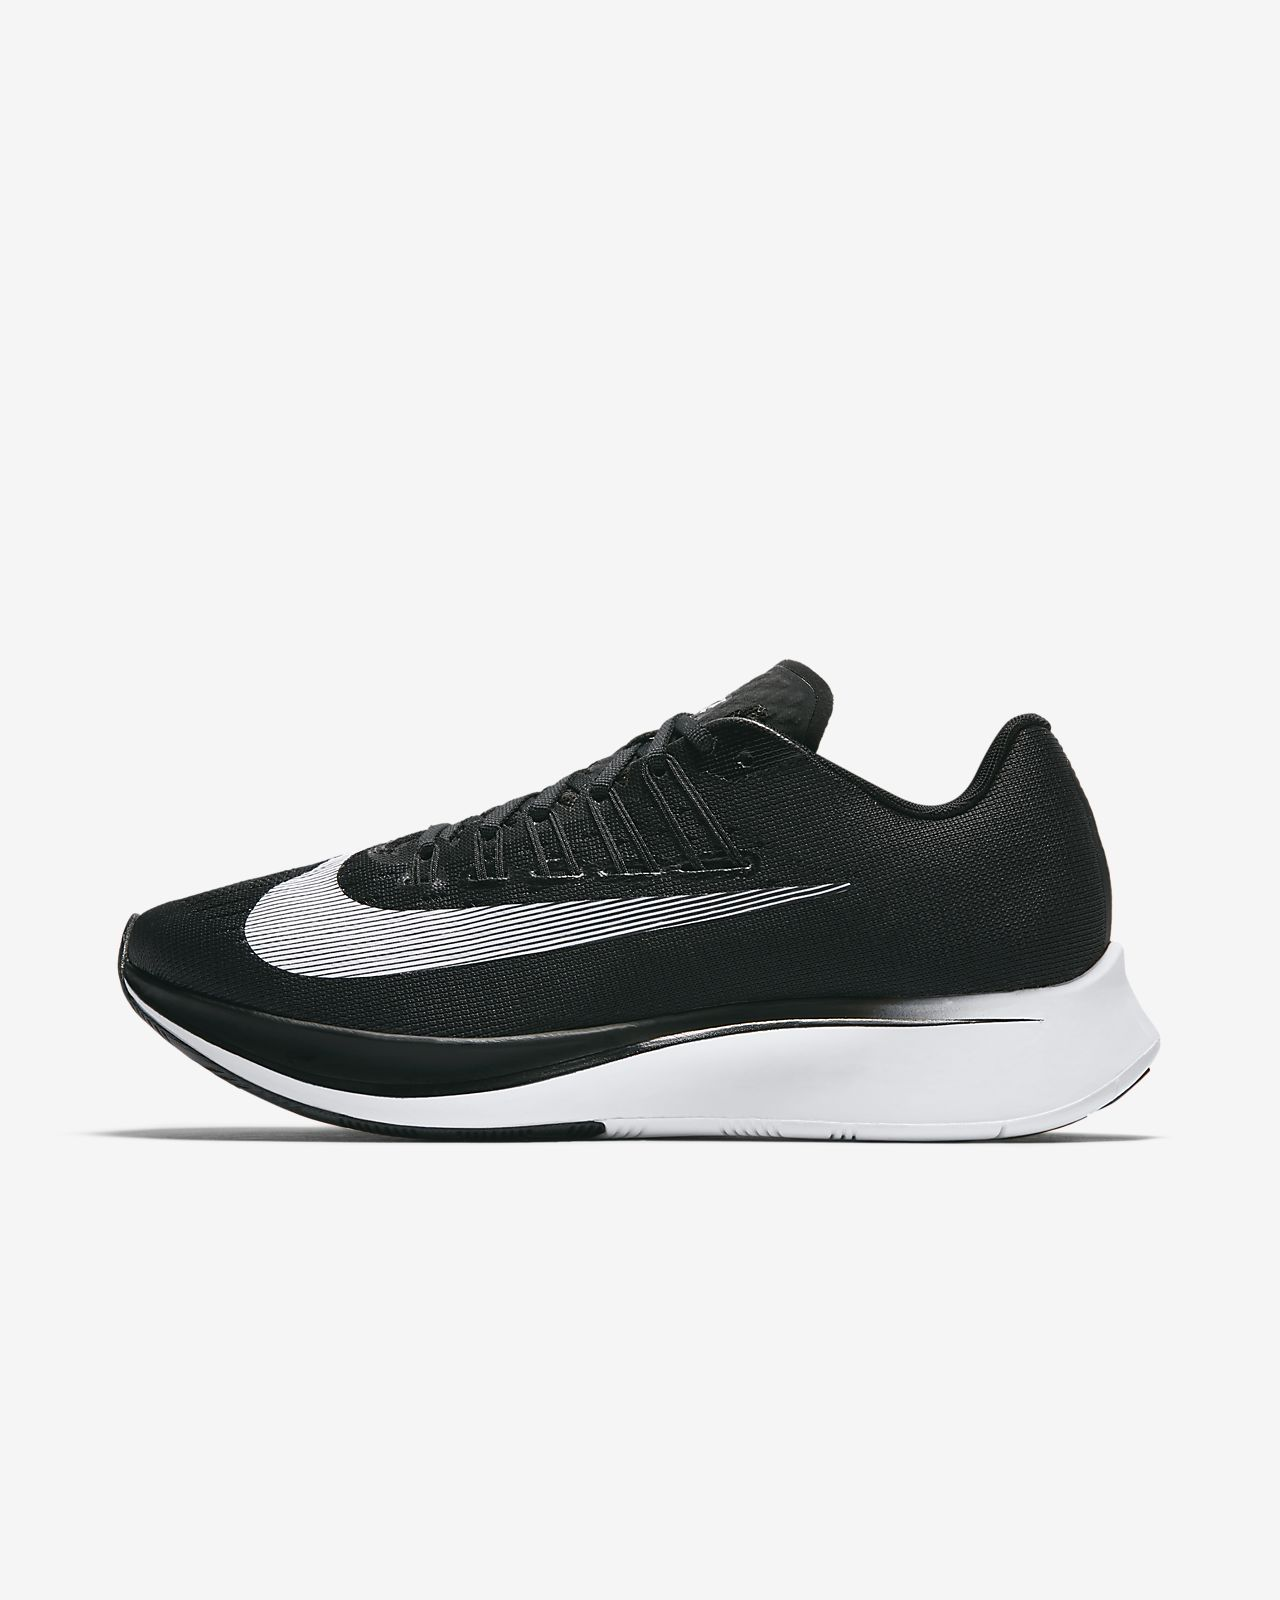 ca9fe512f61 Nike Zoom Fly Women s Running Shoe. Nike.com